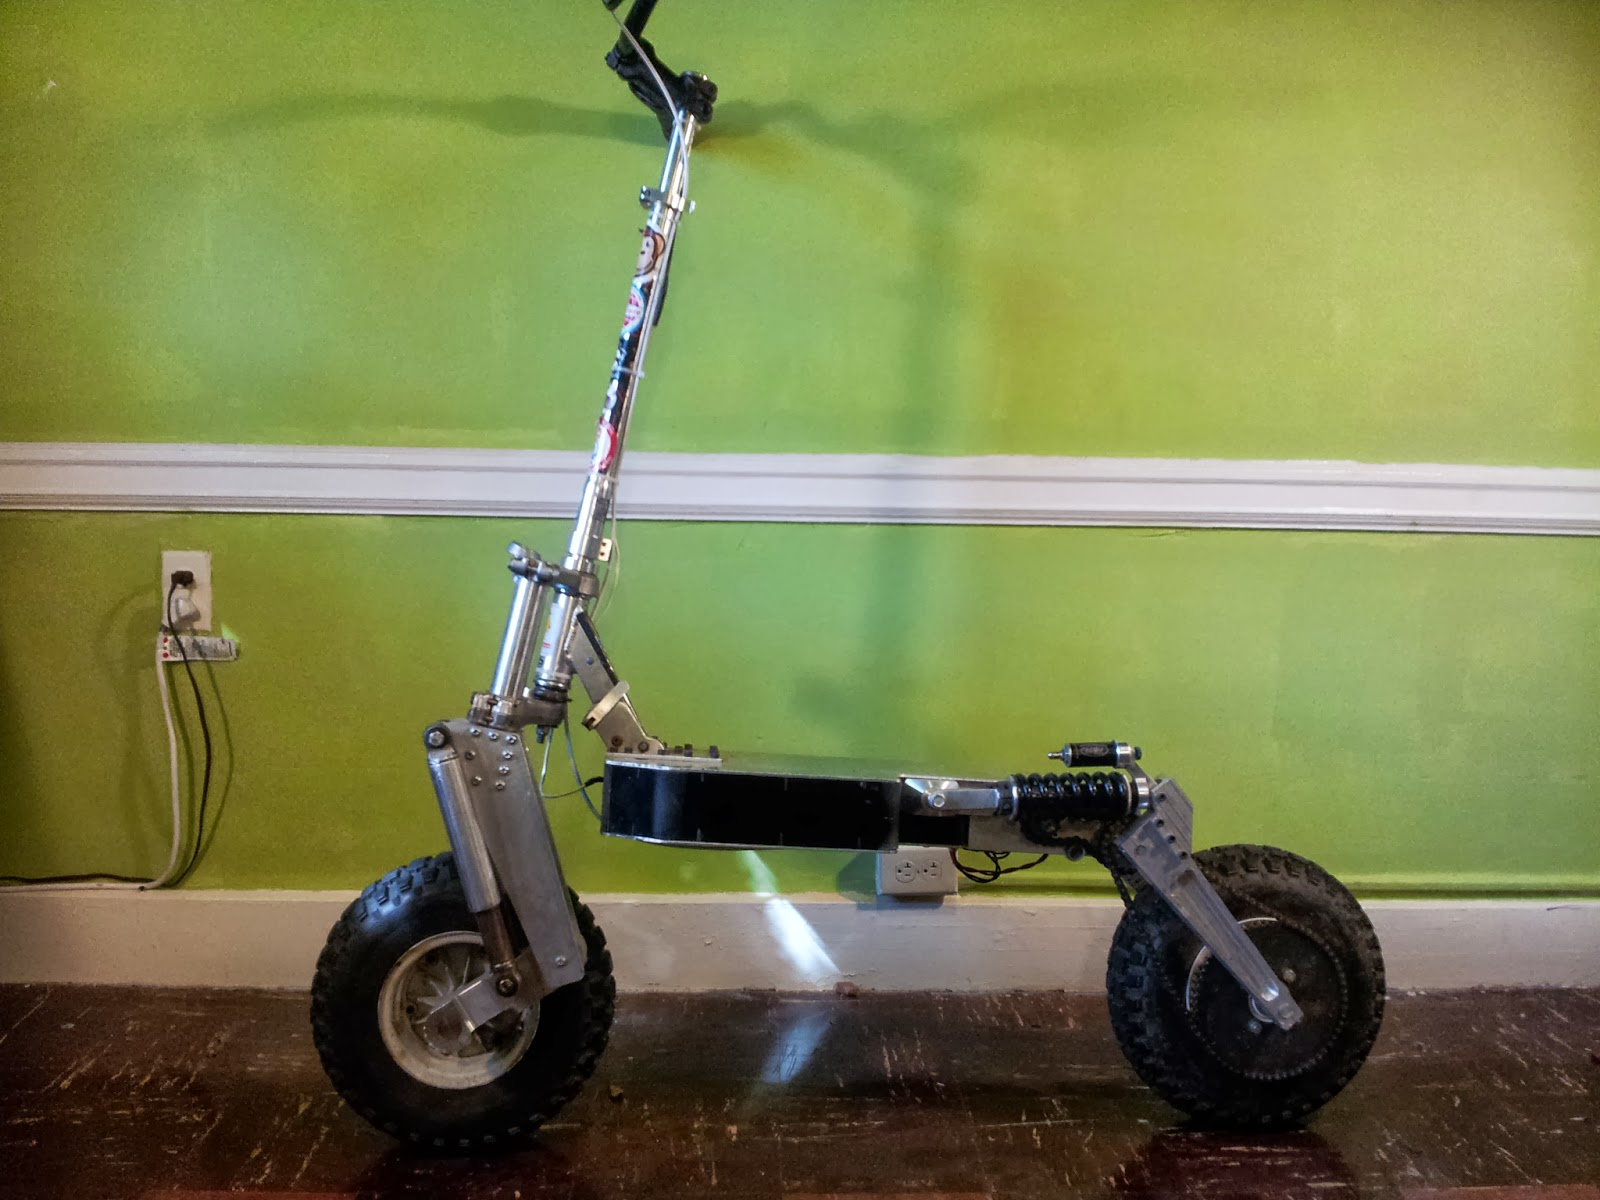 http://build-its.blogspot.com/2013/12/all-terrain-scooter-redux.html